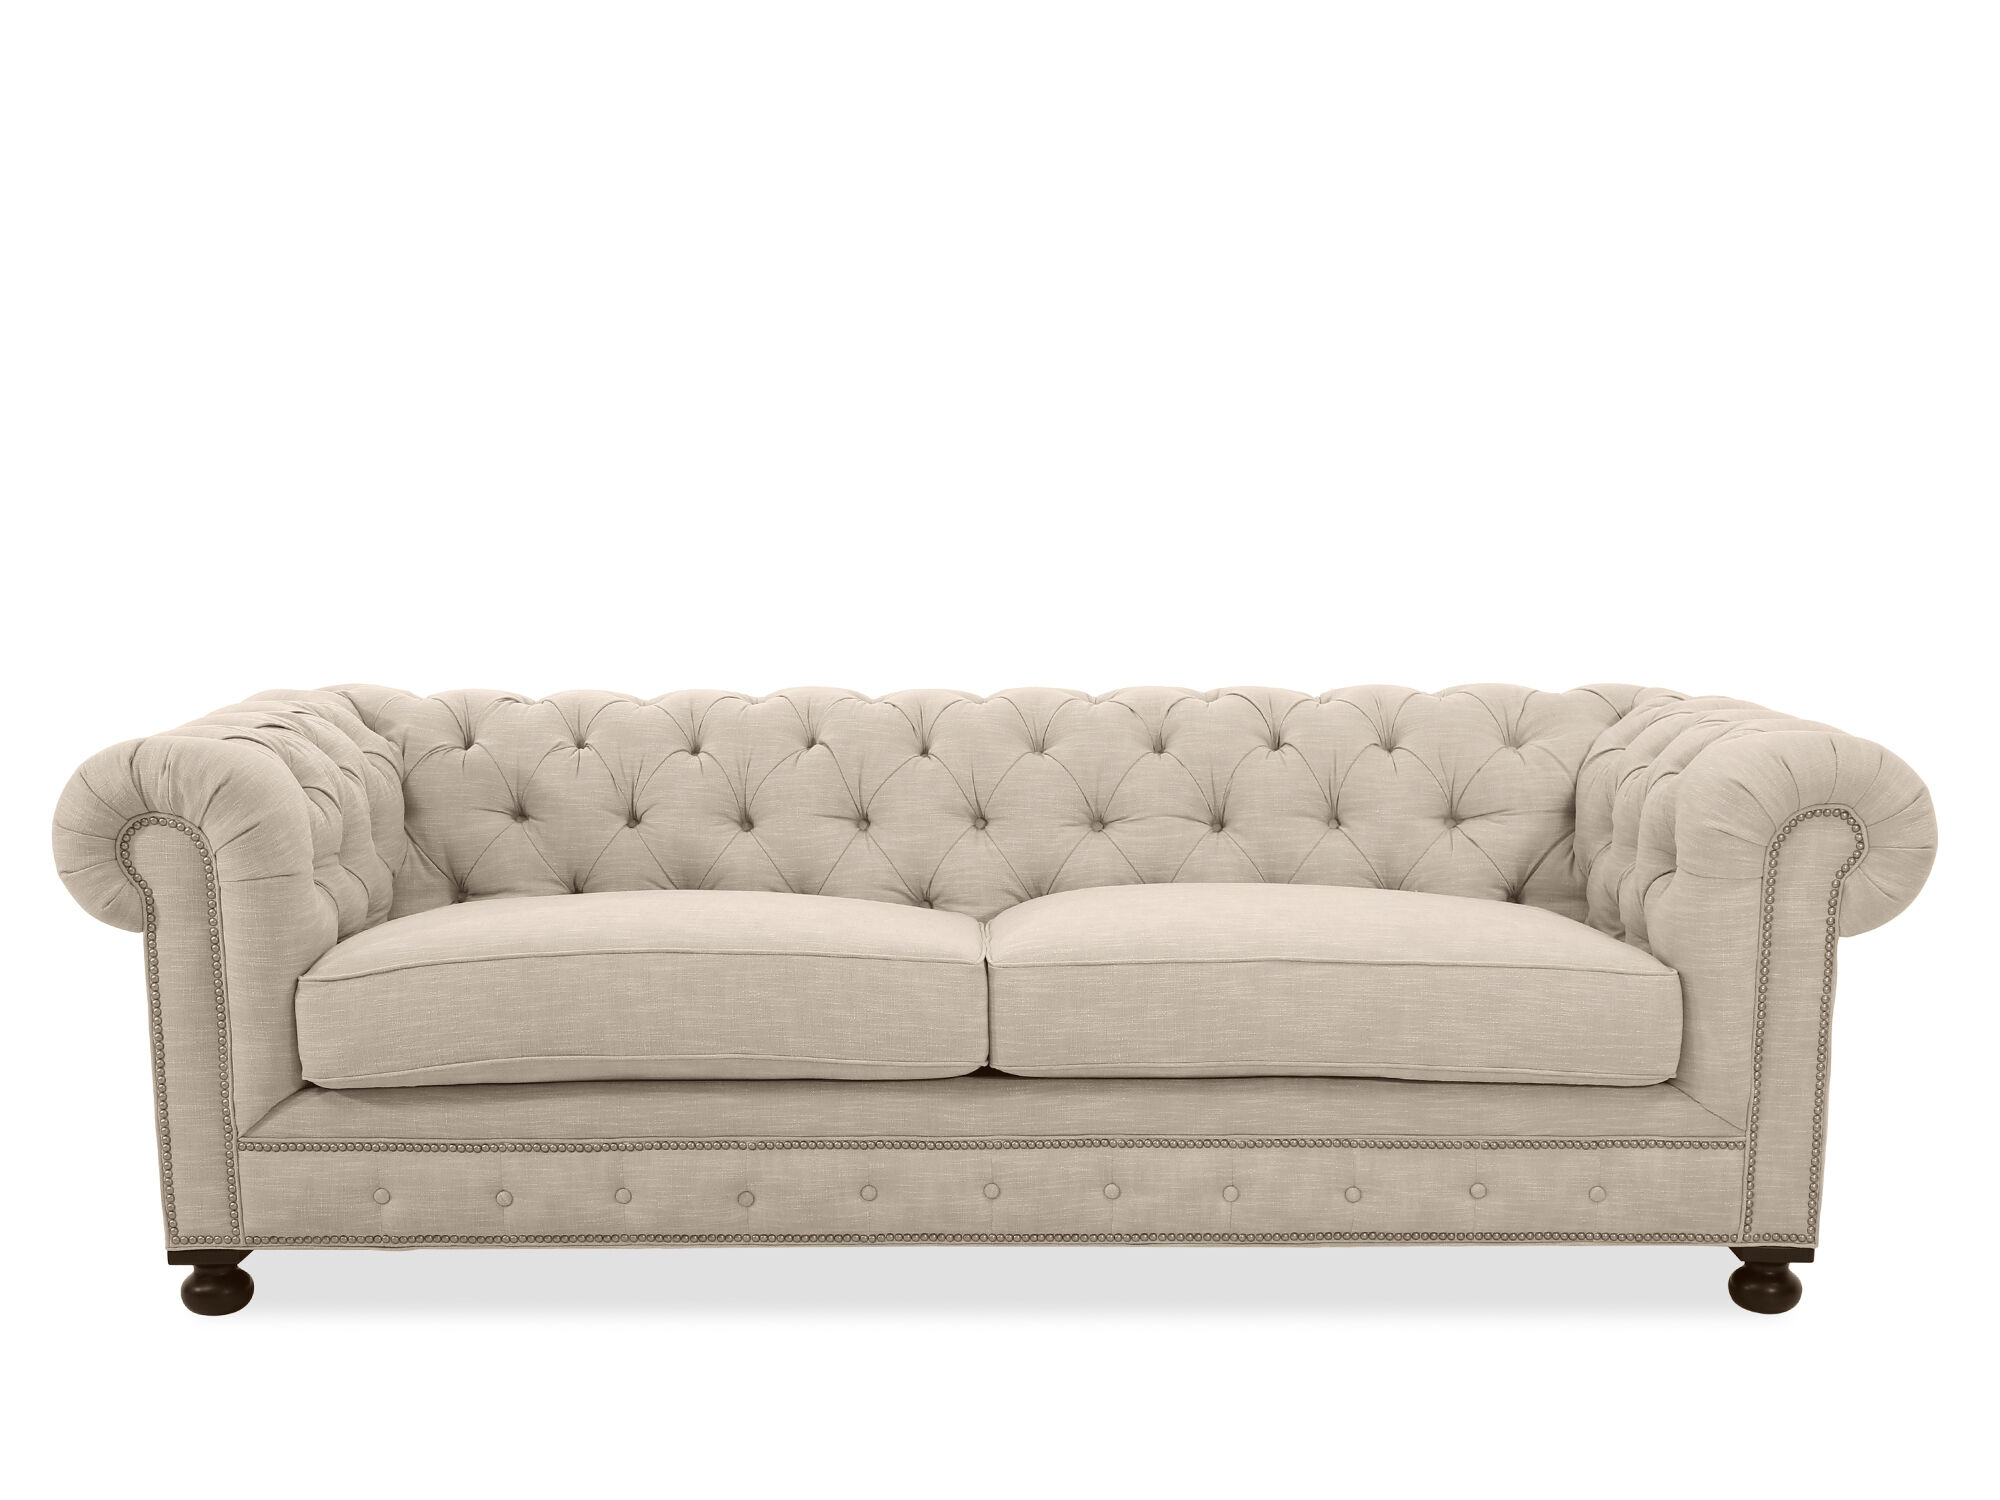 100 Quot Low Profile Tufted Silver Nailhead Trimmed Sofa In